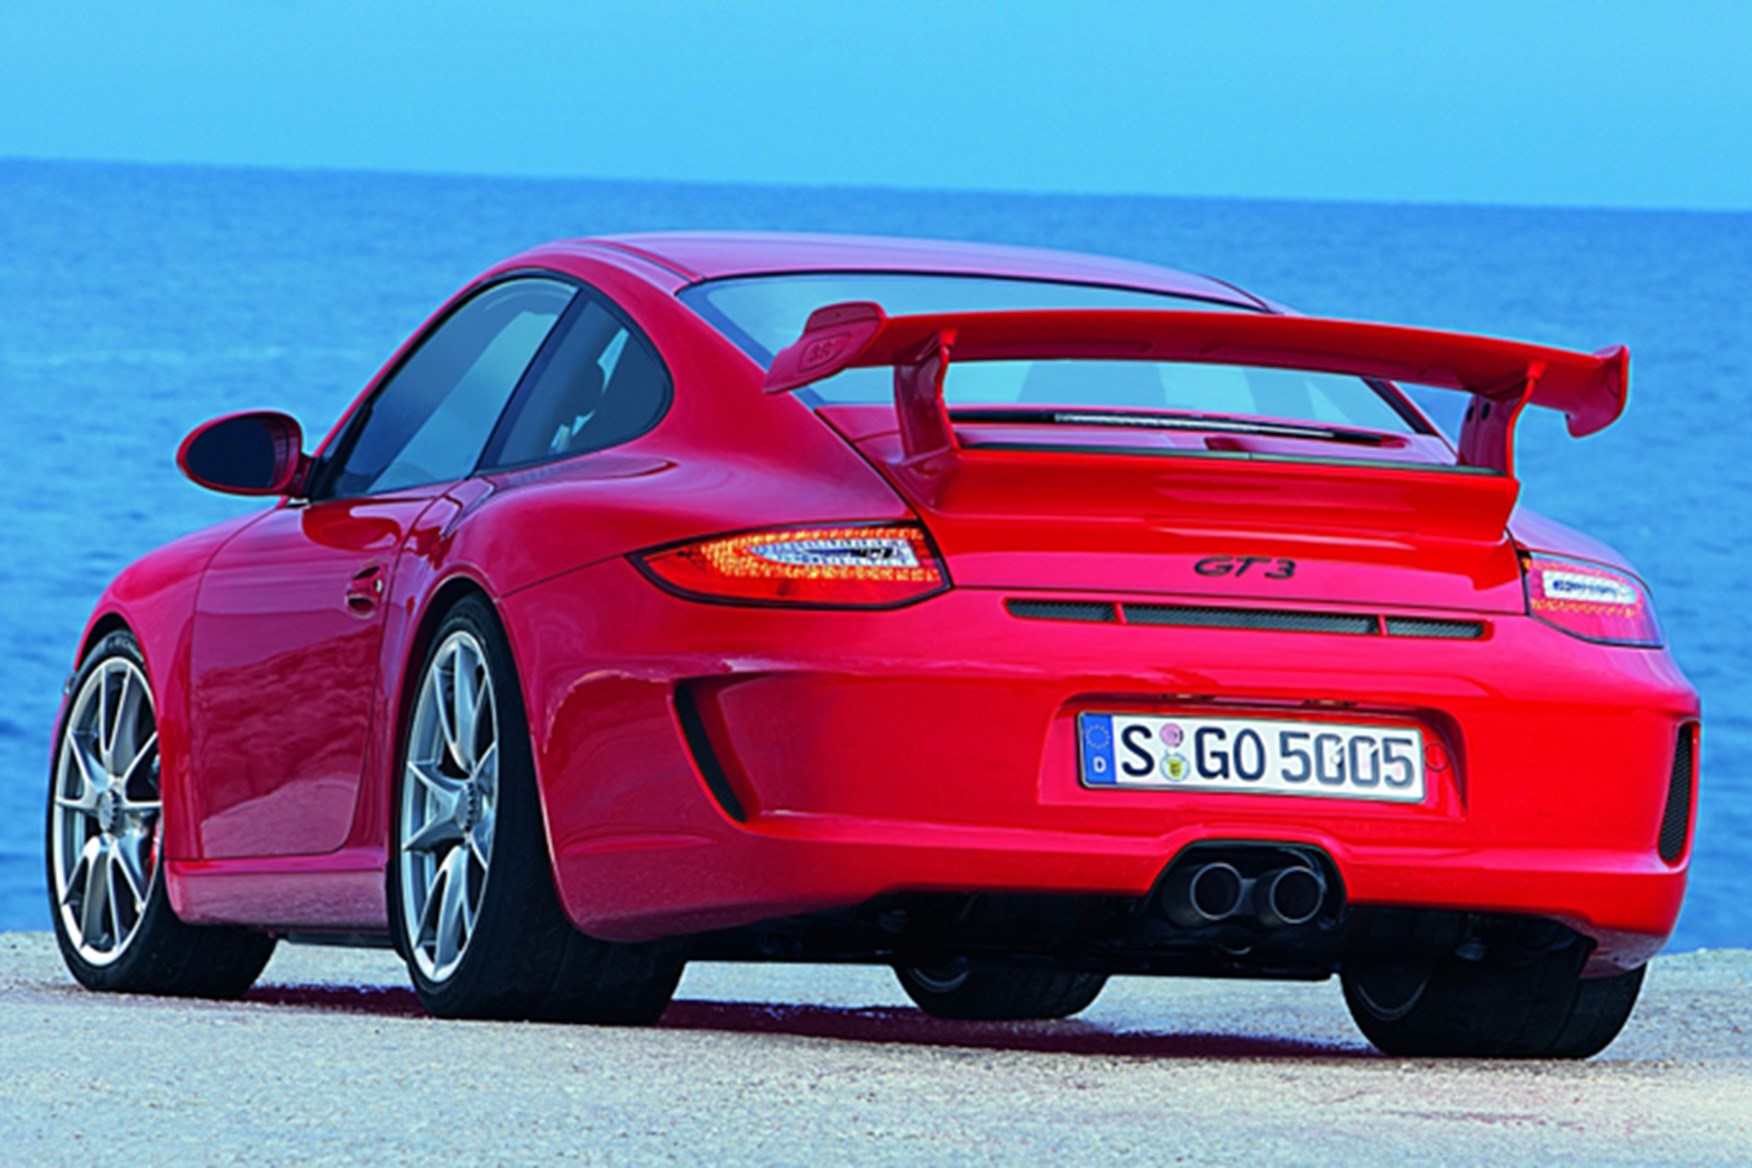 Hmm New Porsche 911 GT3 (2009) Arrives At The Geneva Motor Show 2009 In  March